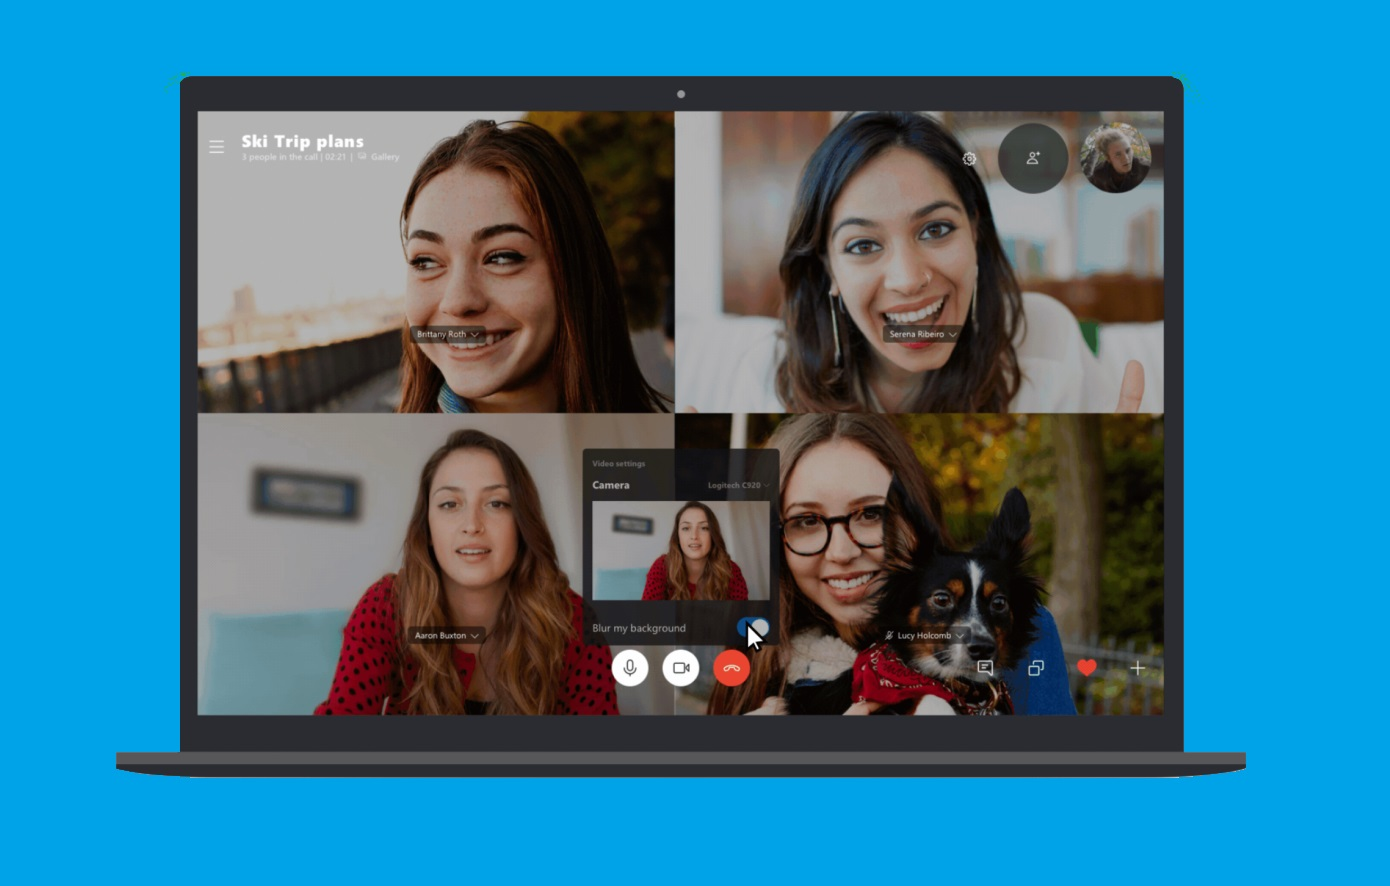 Skype introduces a new feature to eliminate background 'mess